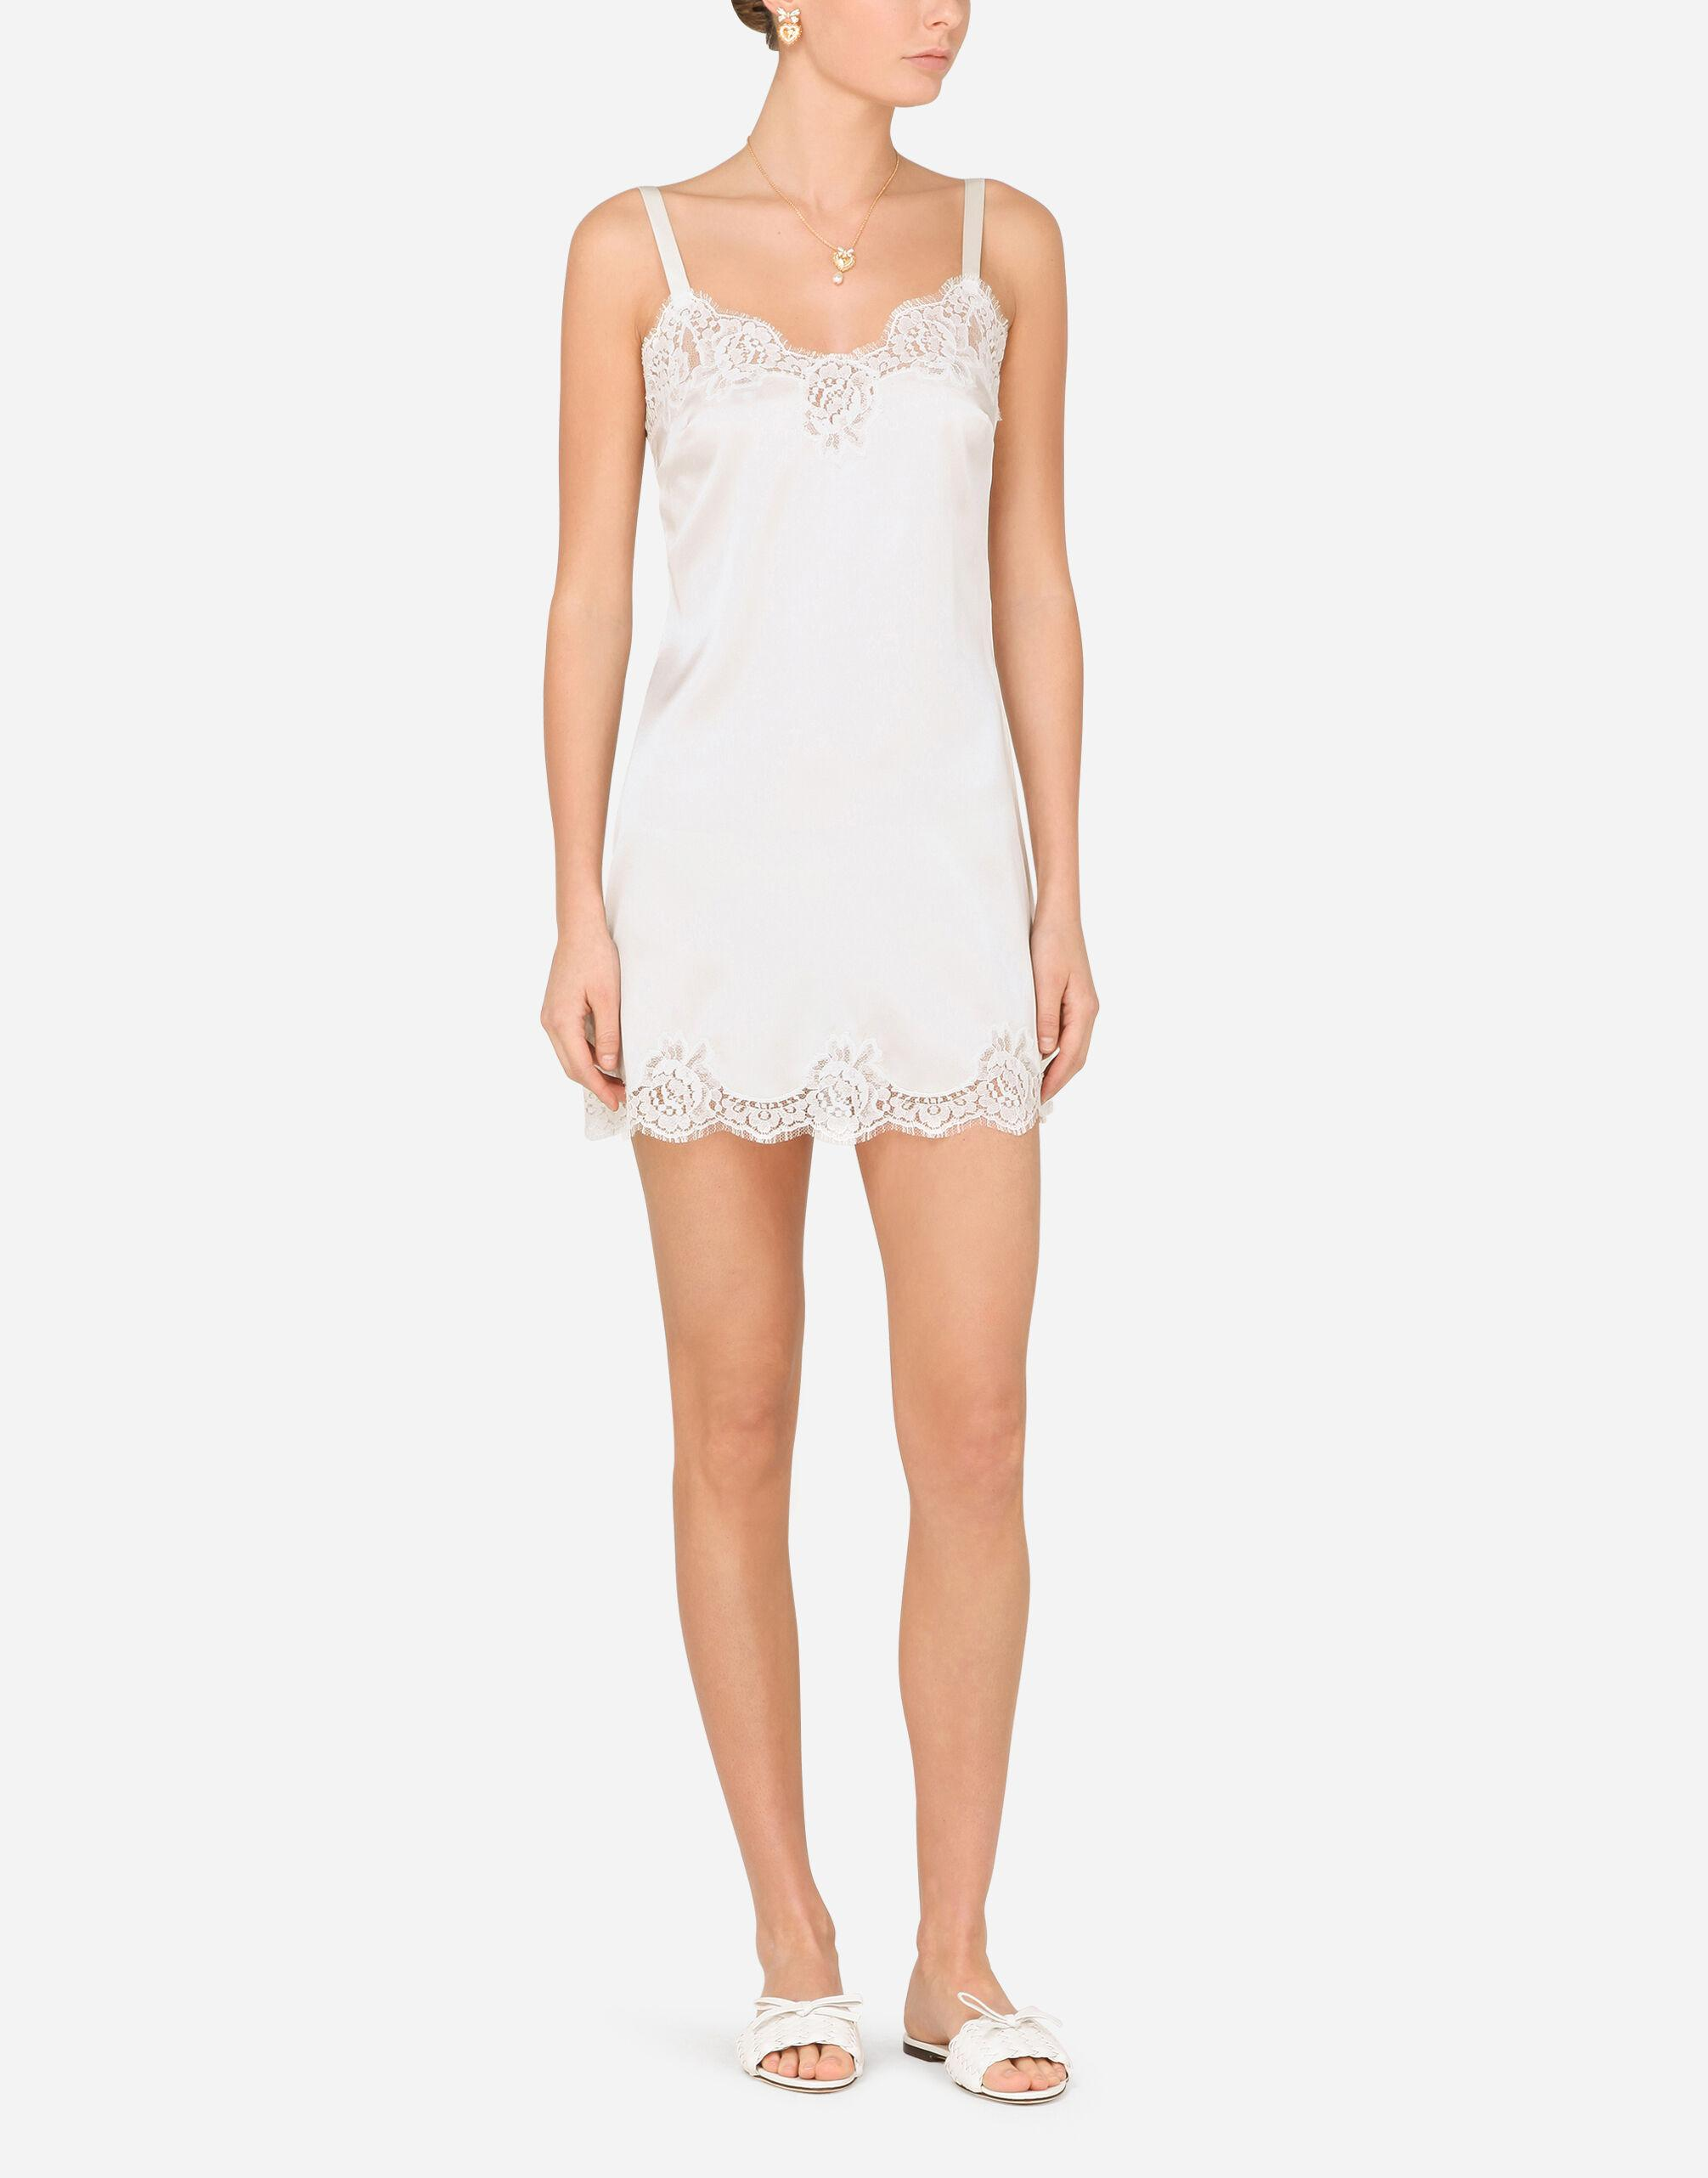 Satin lingerie-style slip with lace detailing